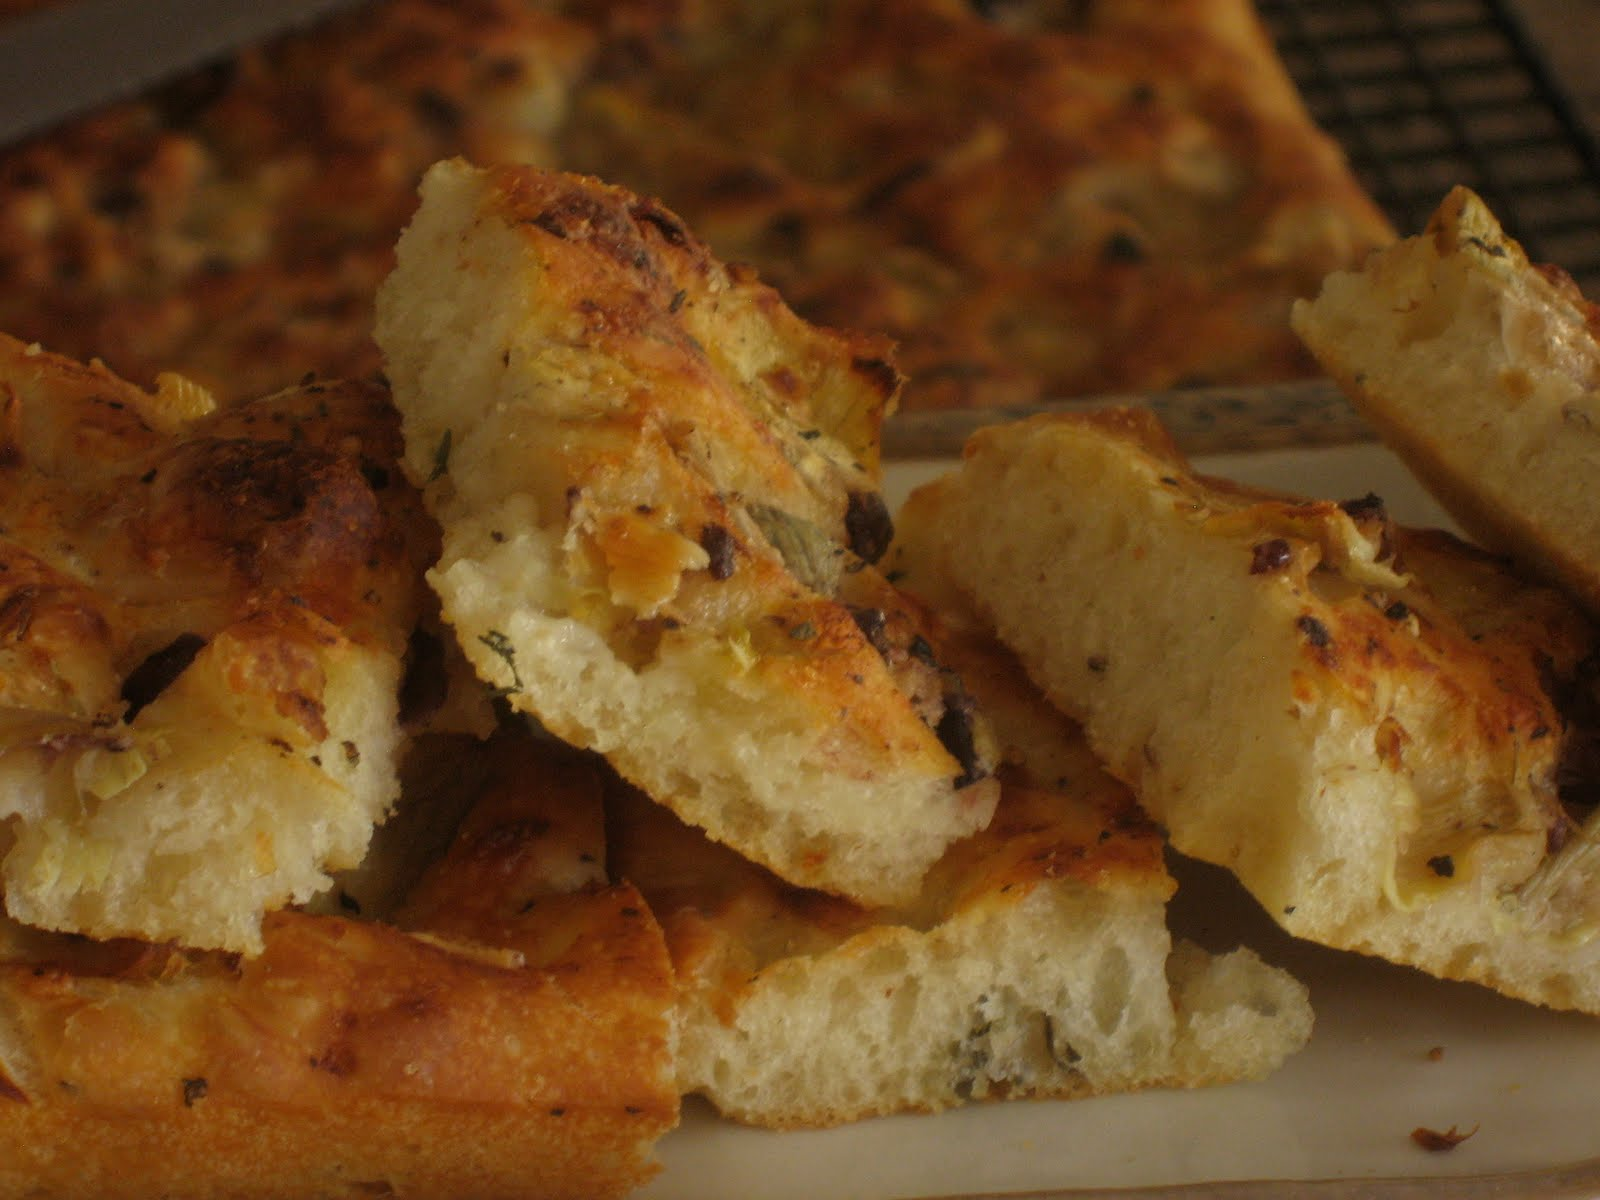 The Dirty Oven: Roasted Garlic Artichoke & Olive Focaccia